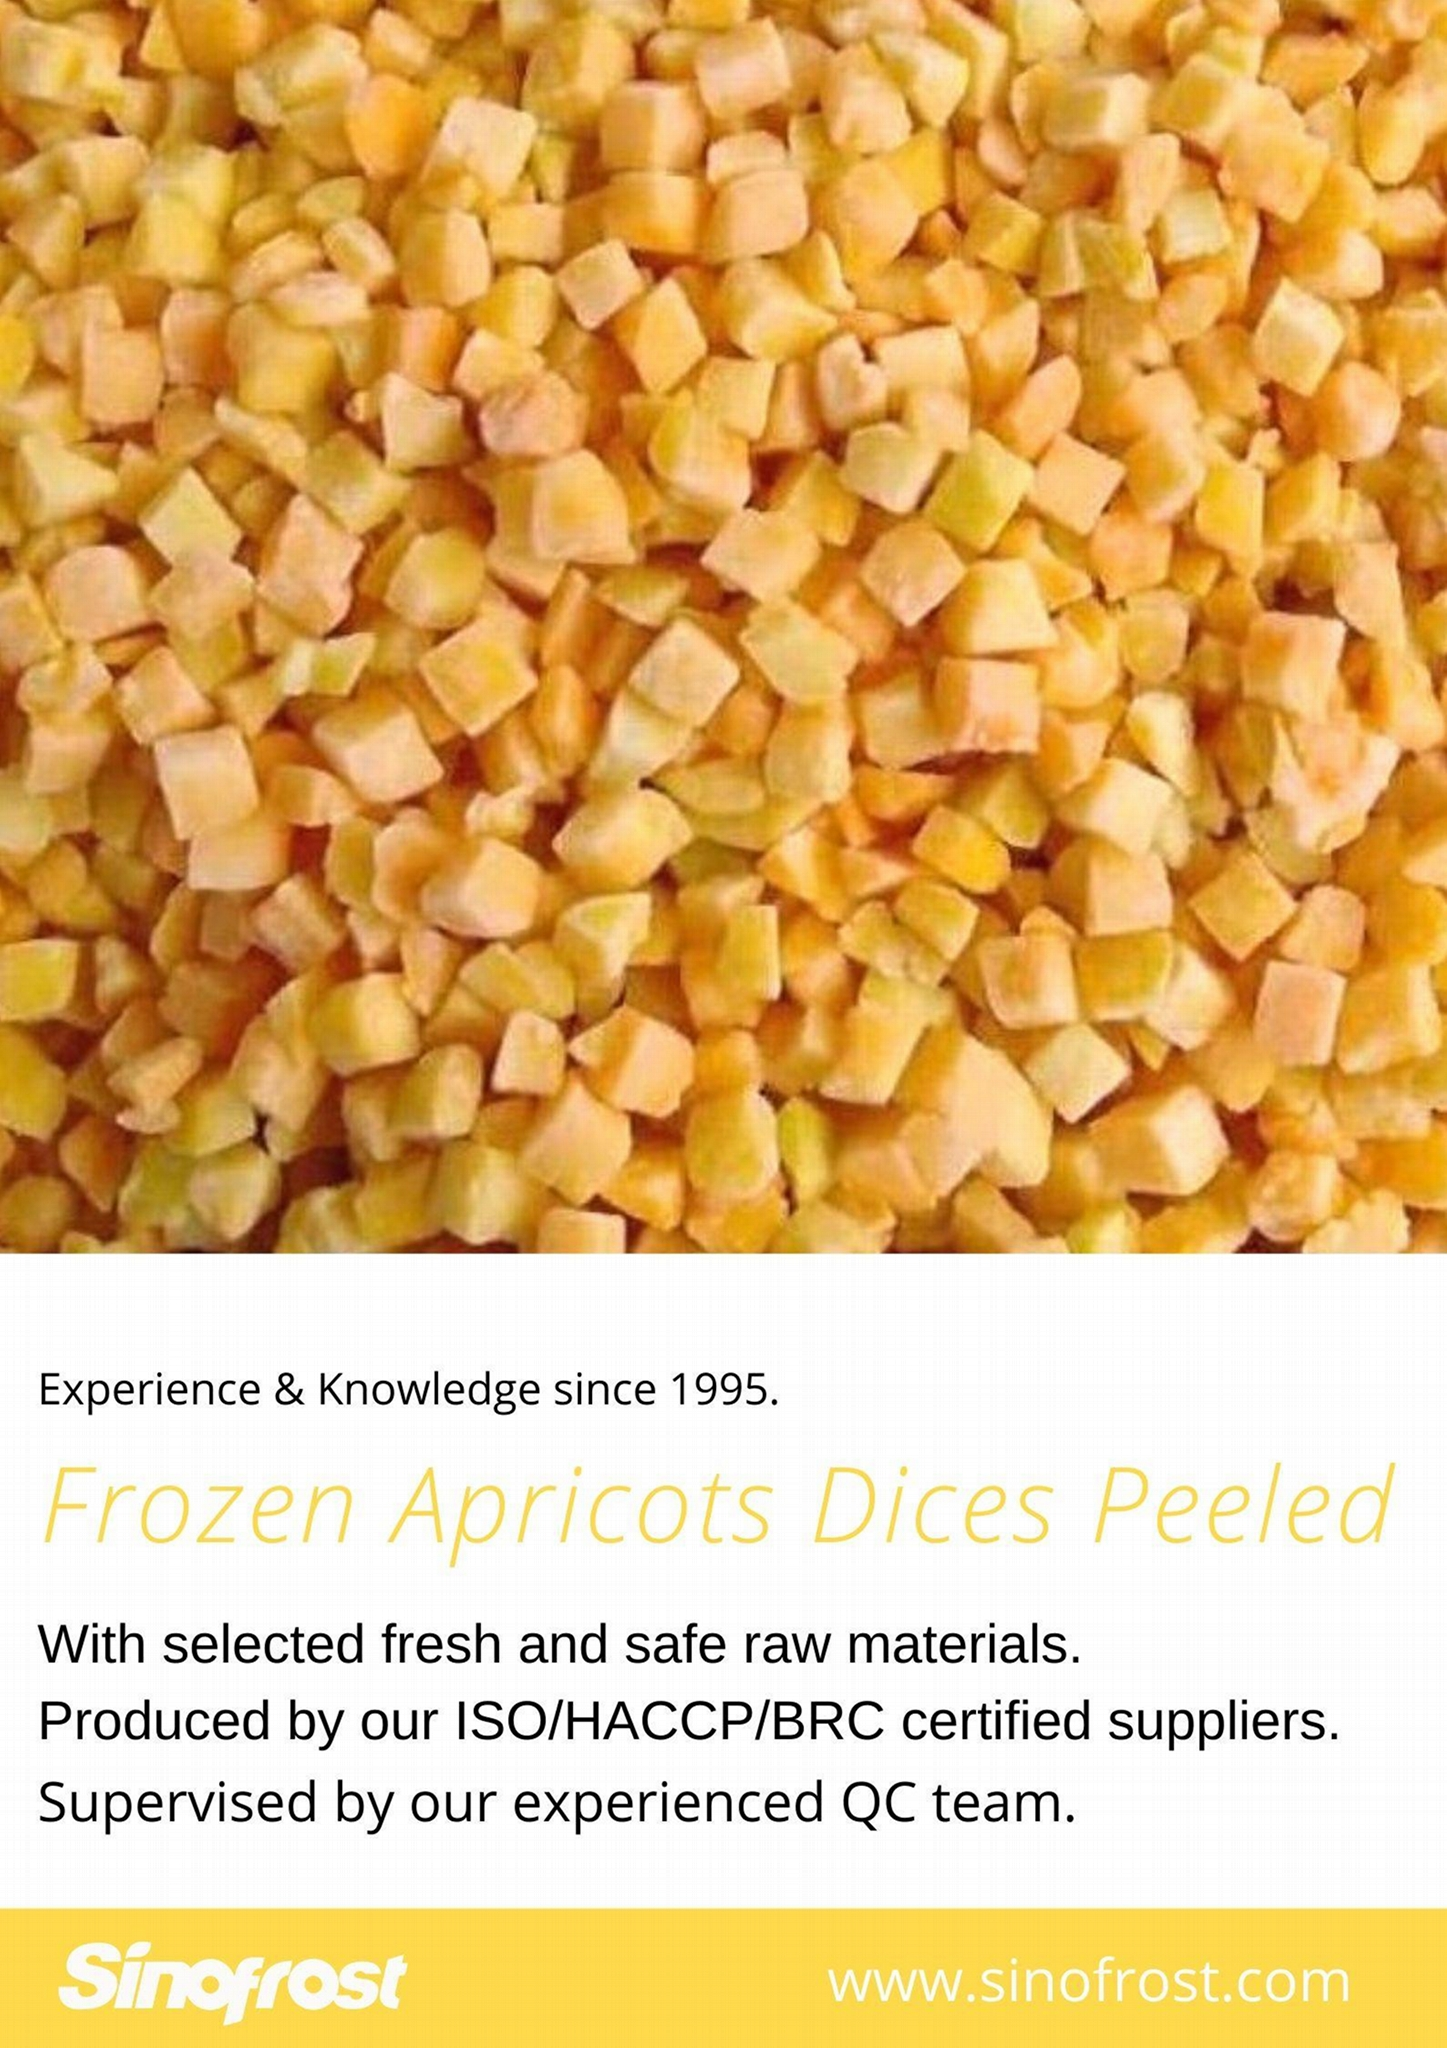 IQF Apricot Dices,IQF Diced Apricots,Frozen Apricots Cubes,without peel,b 18